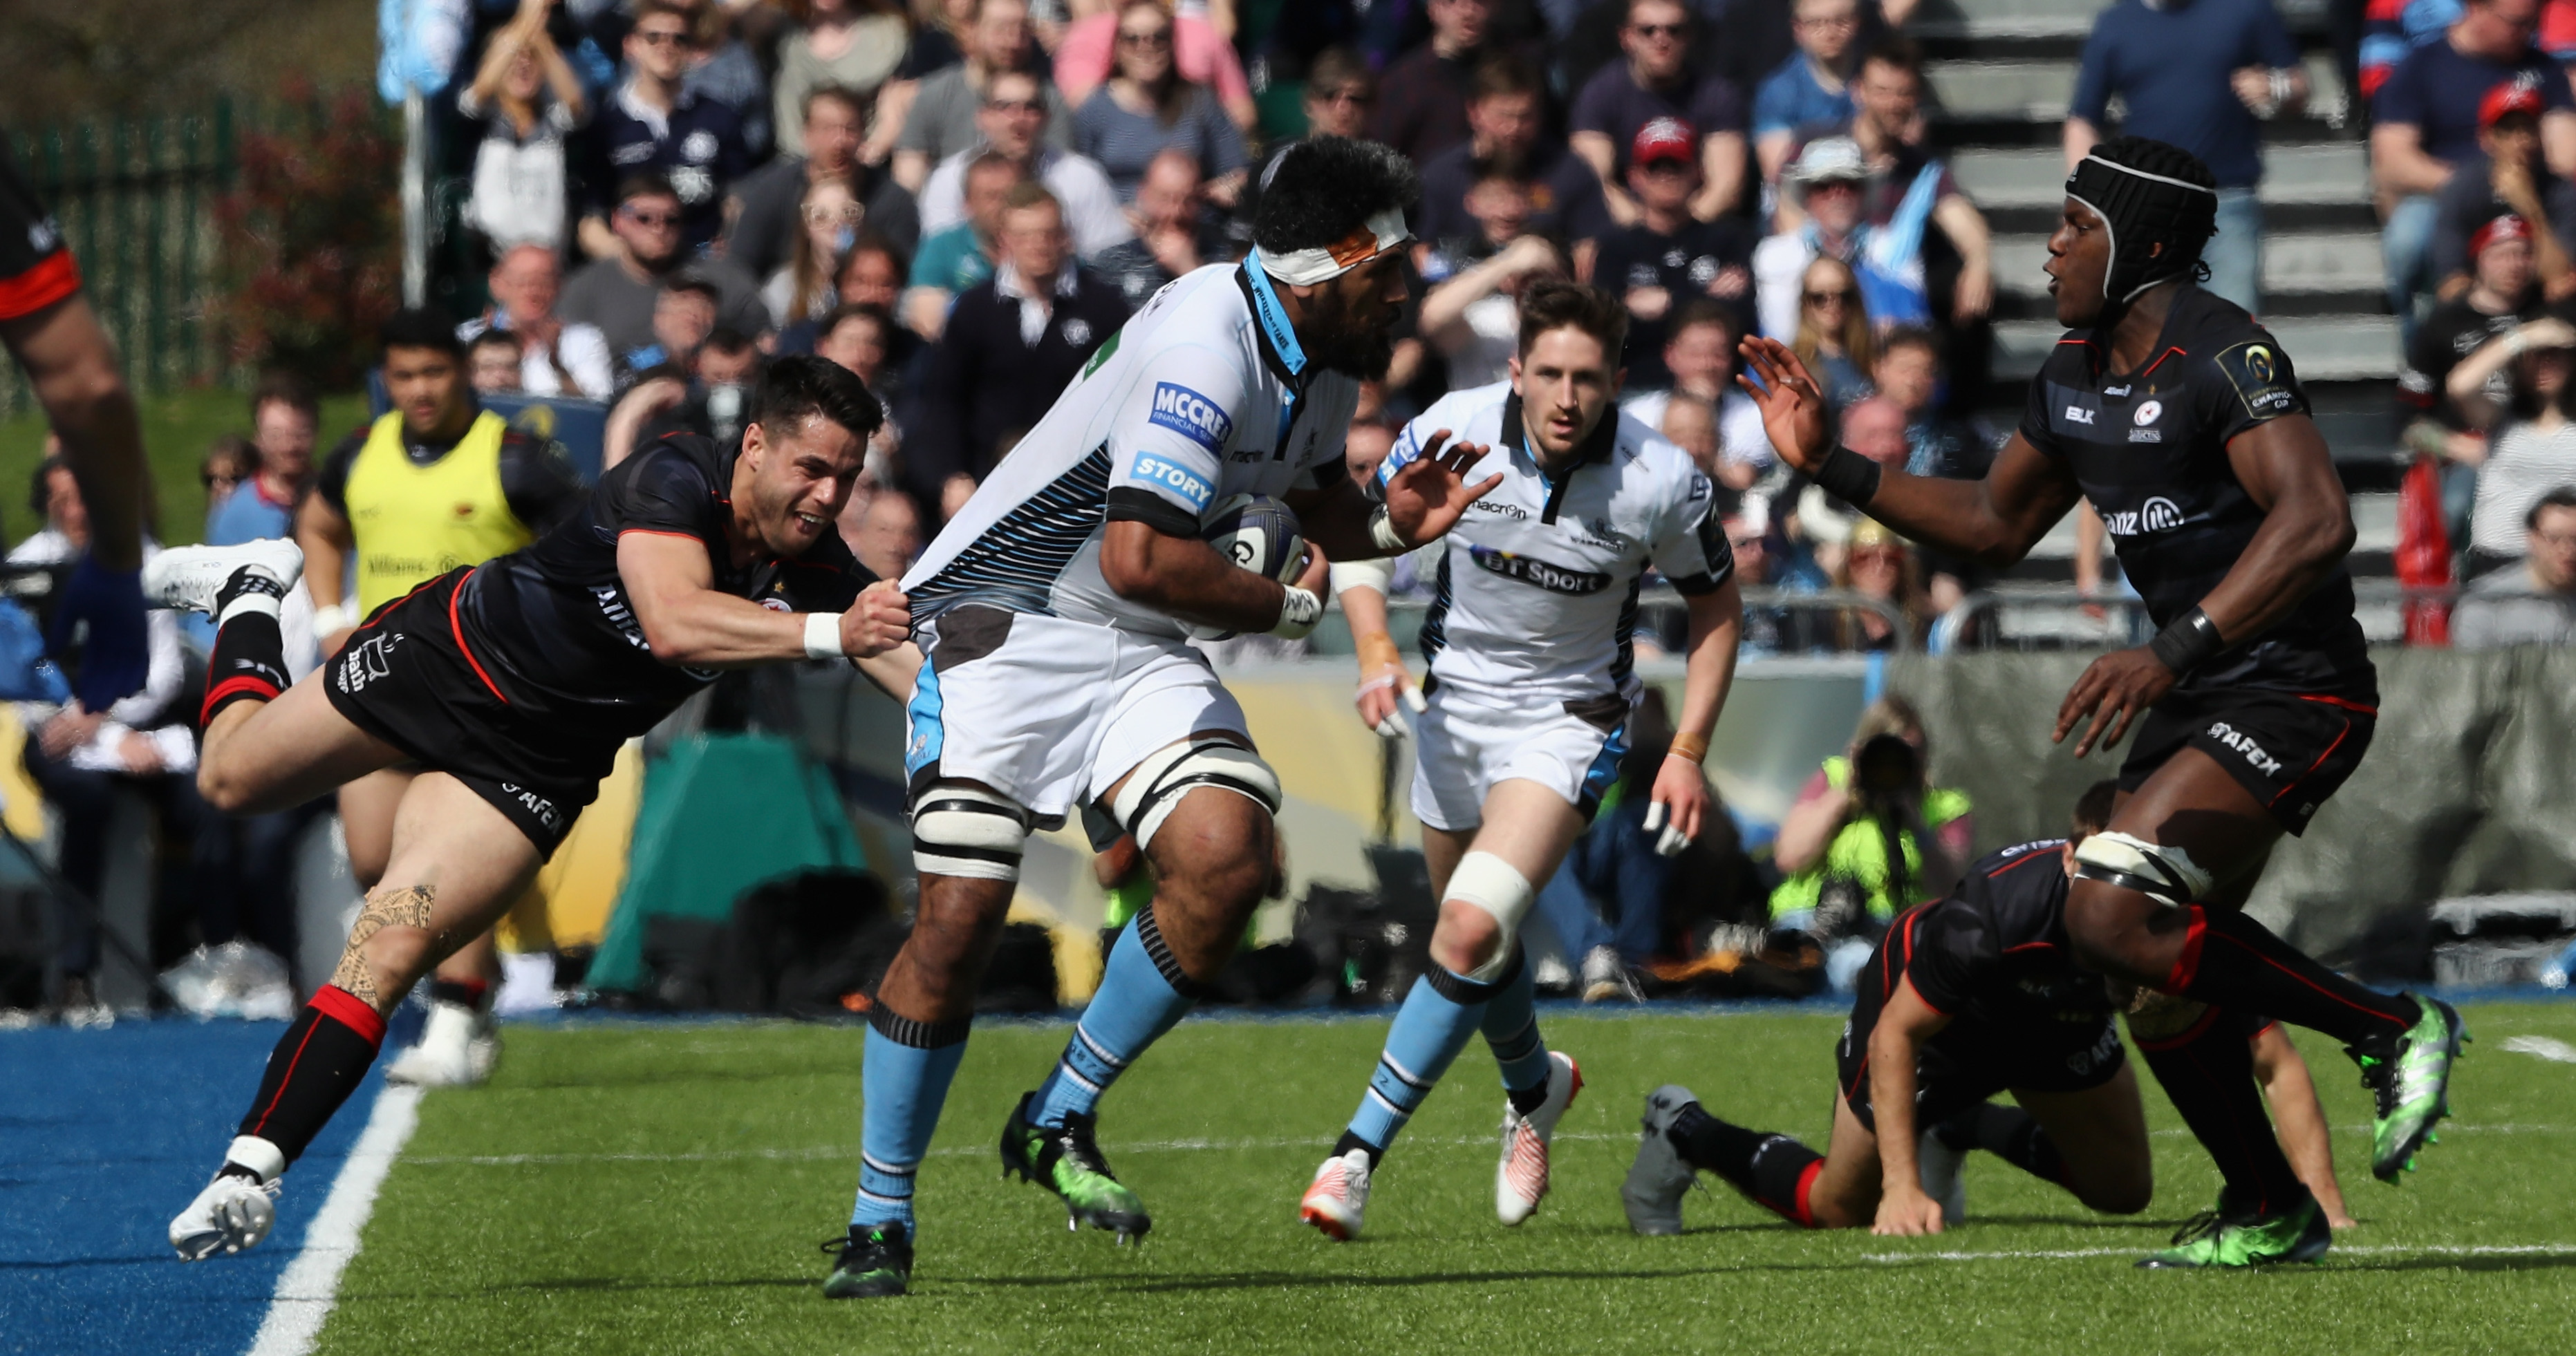 Glasgow Warriors lost to eventual winners Saracens in the quarter-final of this year's European Rugby Champions Cup.